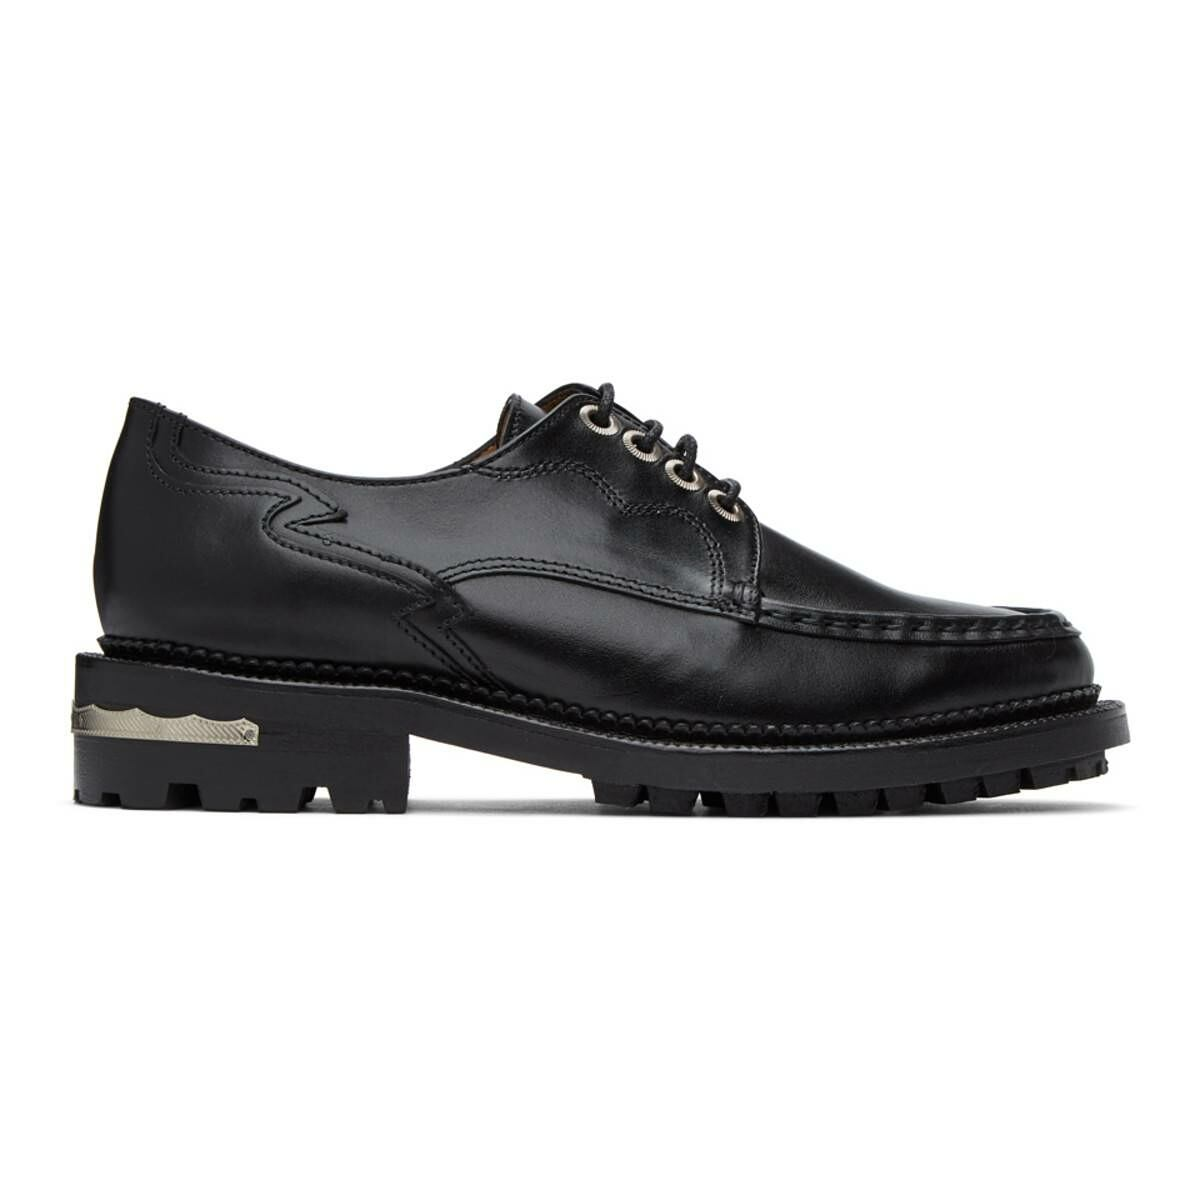 Toga Pulla Black Treaded Lace-Up Derbys Ssense USA WOMEN Women SHOES Womens LEATHER SHOES